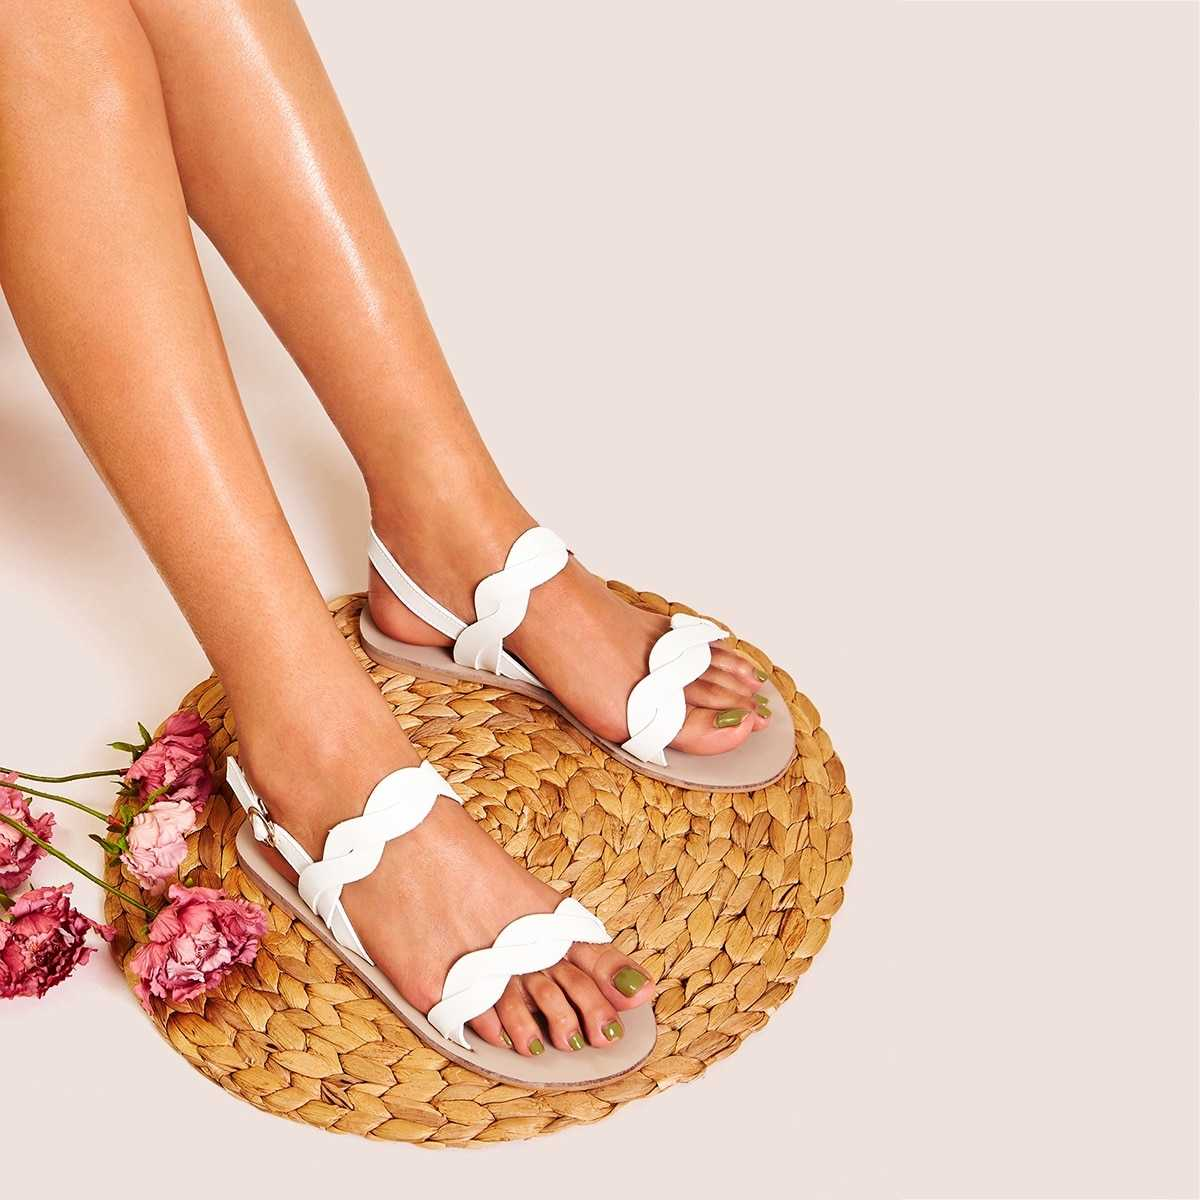 Open Toe Buckle Strap Sandals in White by ROMWE on GOOFASH